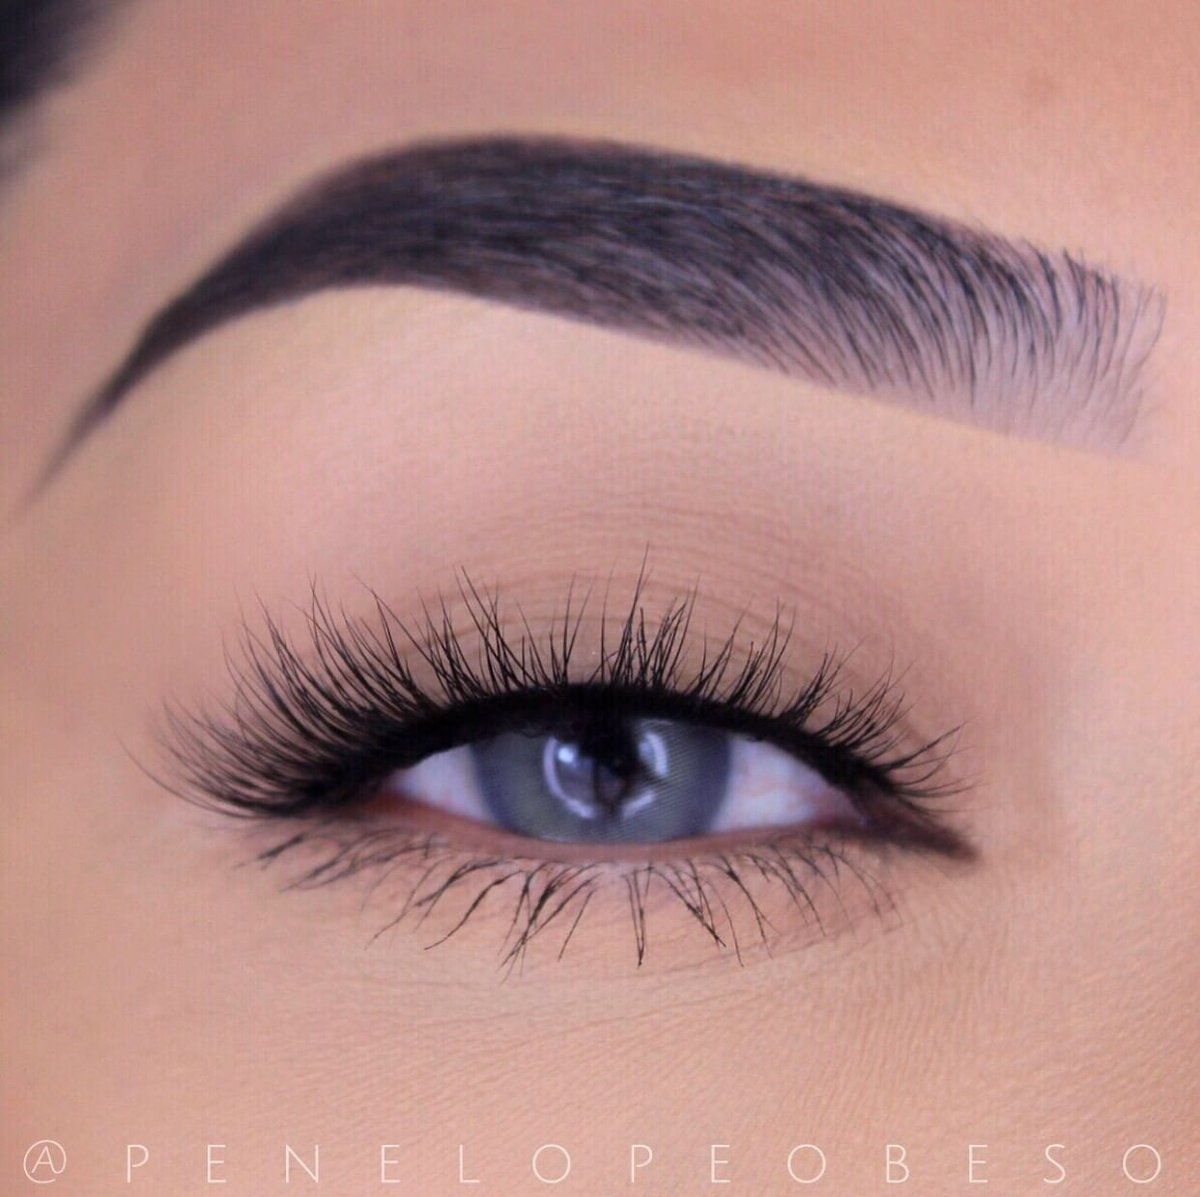 cf1fad585f5 The wispy ends on the Muse lash from Dollhouse Lashes will take you ...